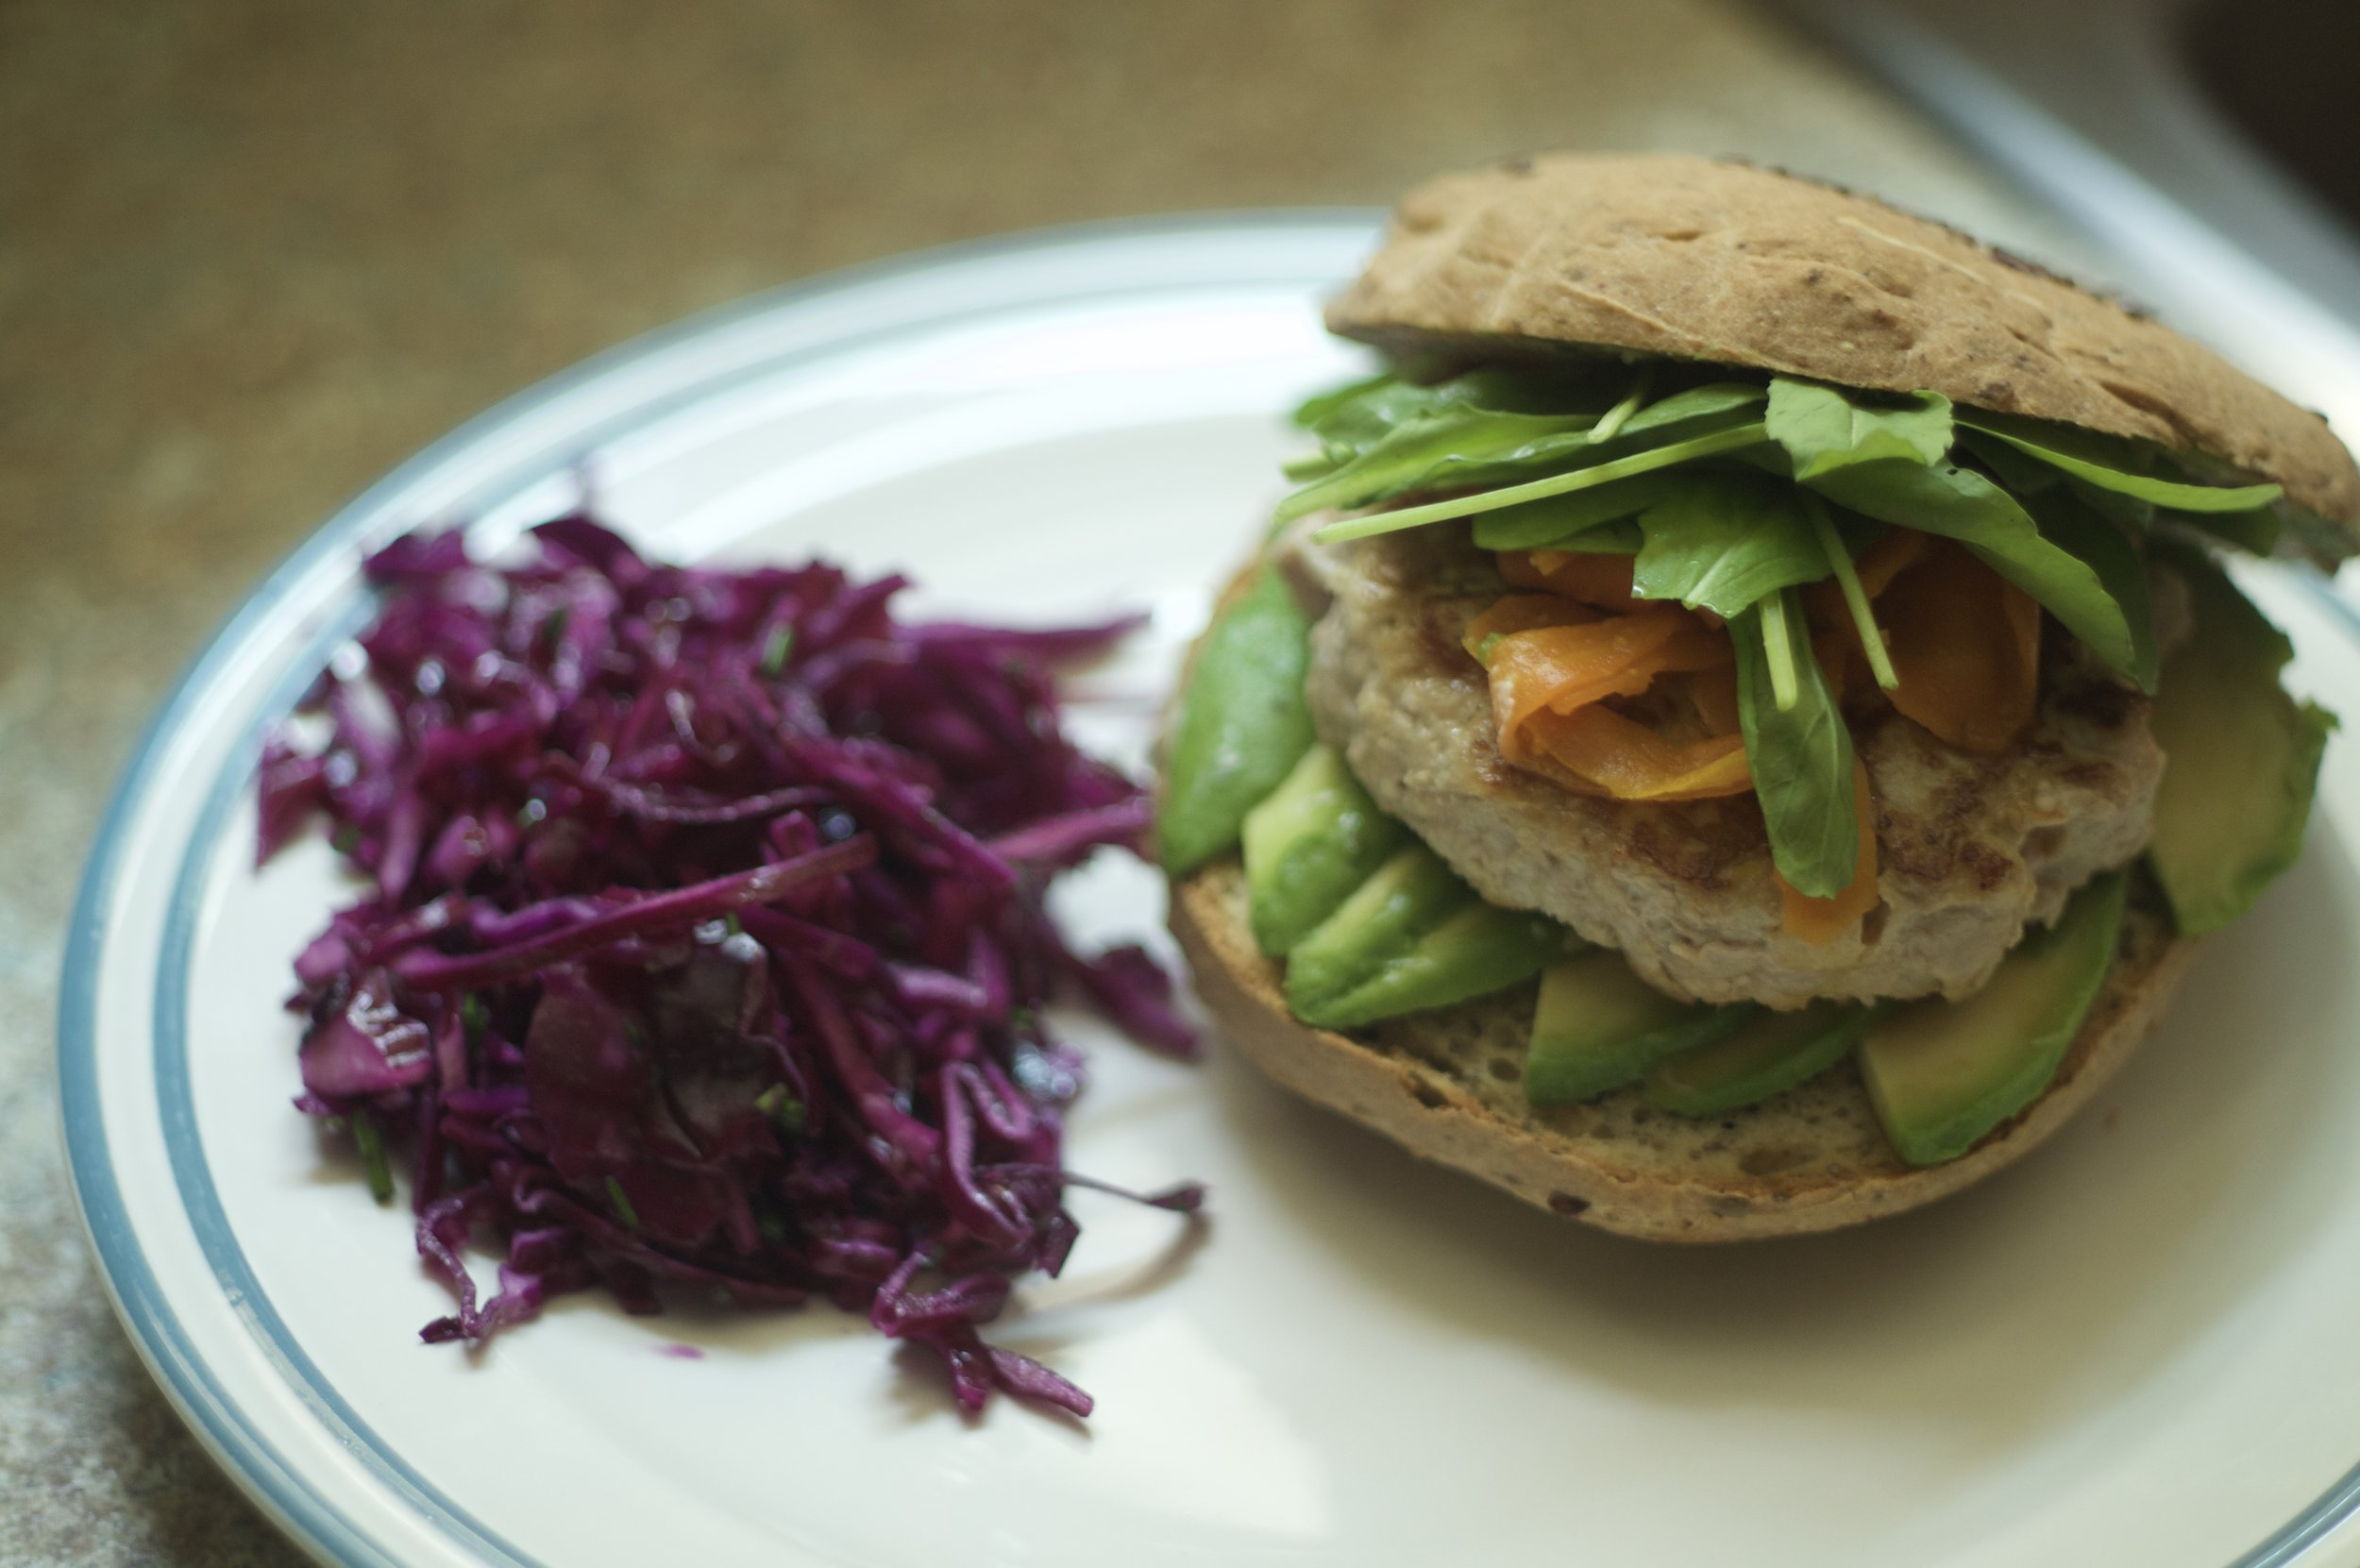 Home made tuna burger with produce & fermented carrots purchased from Laurier Market